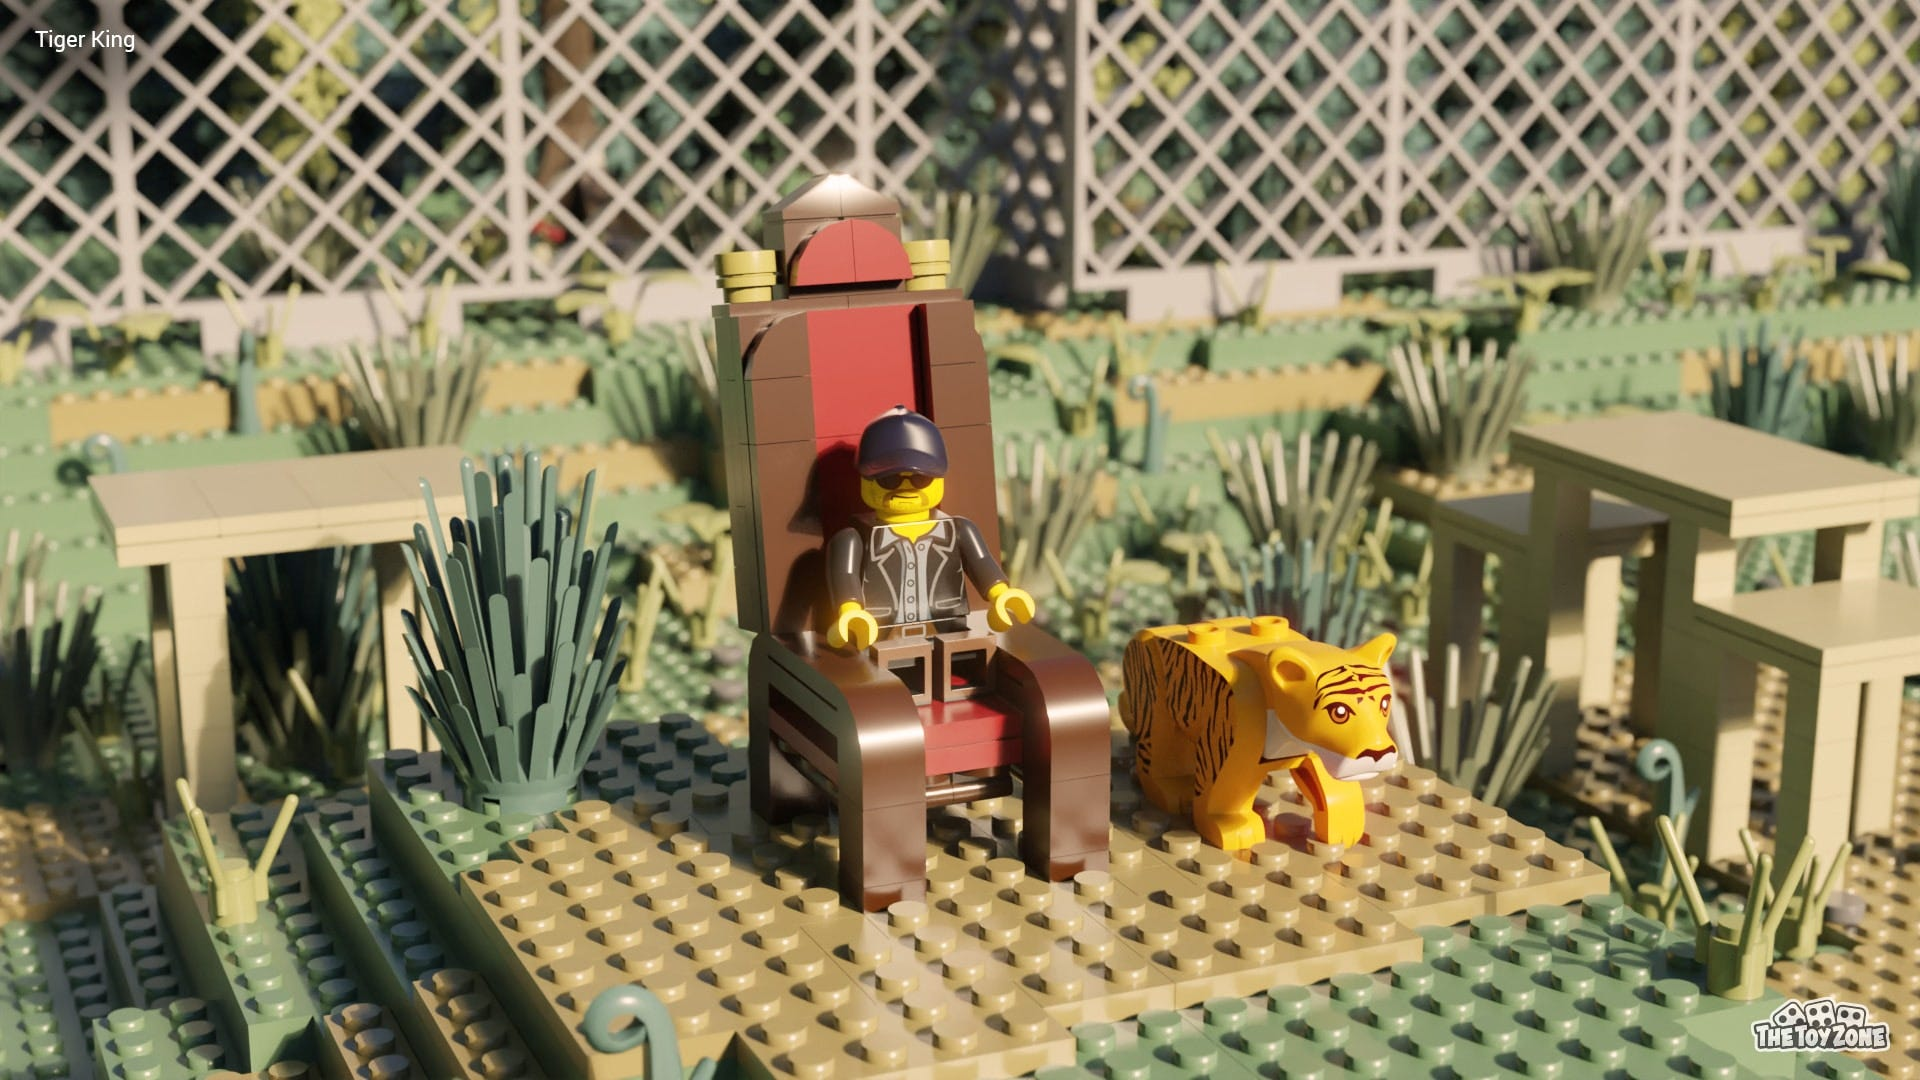 The LEGO Minifigure version of Joe Exotic sits on a throne next to a LEGO tiger.